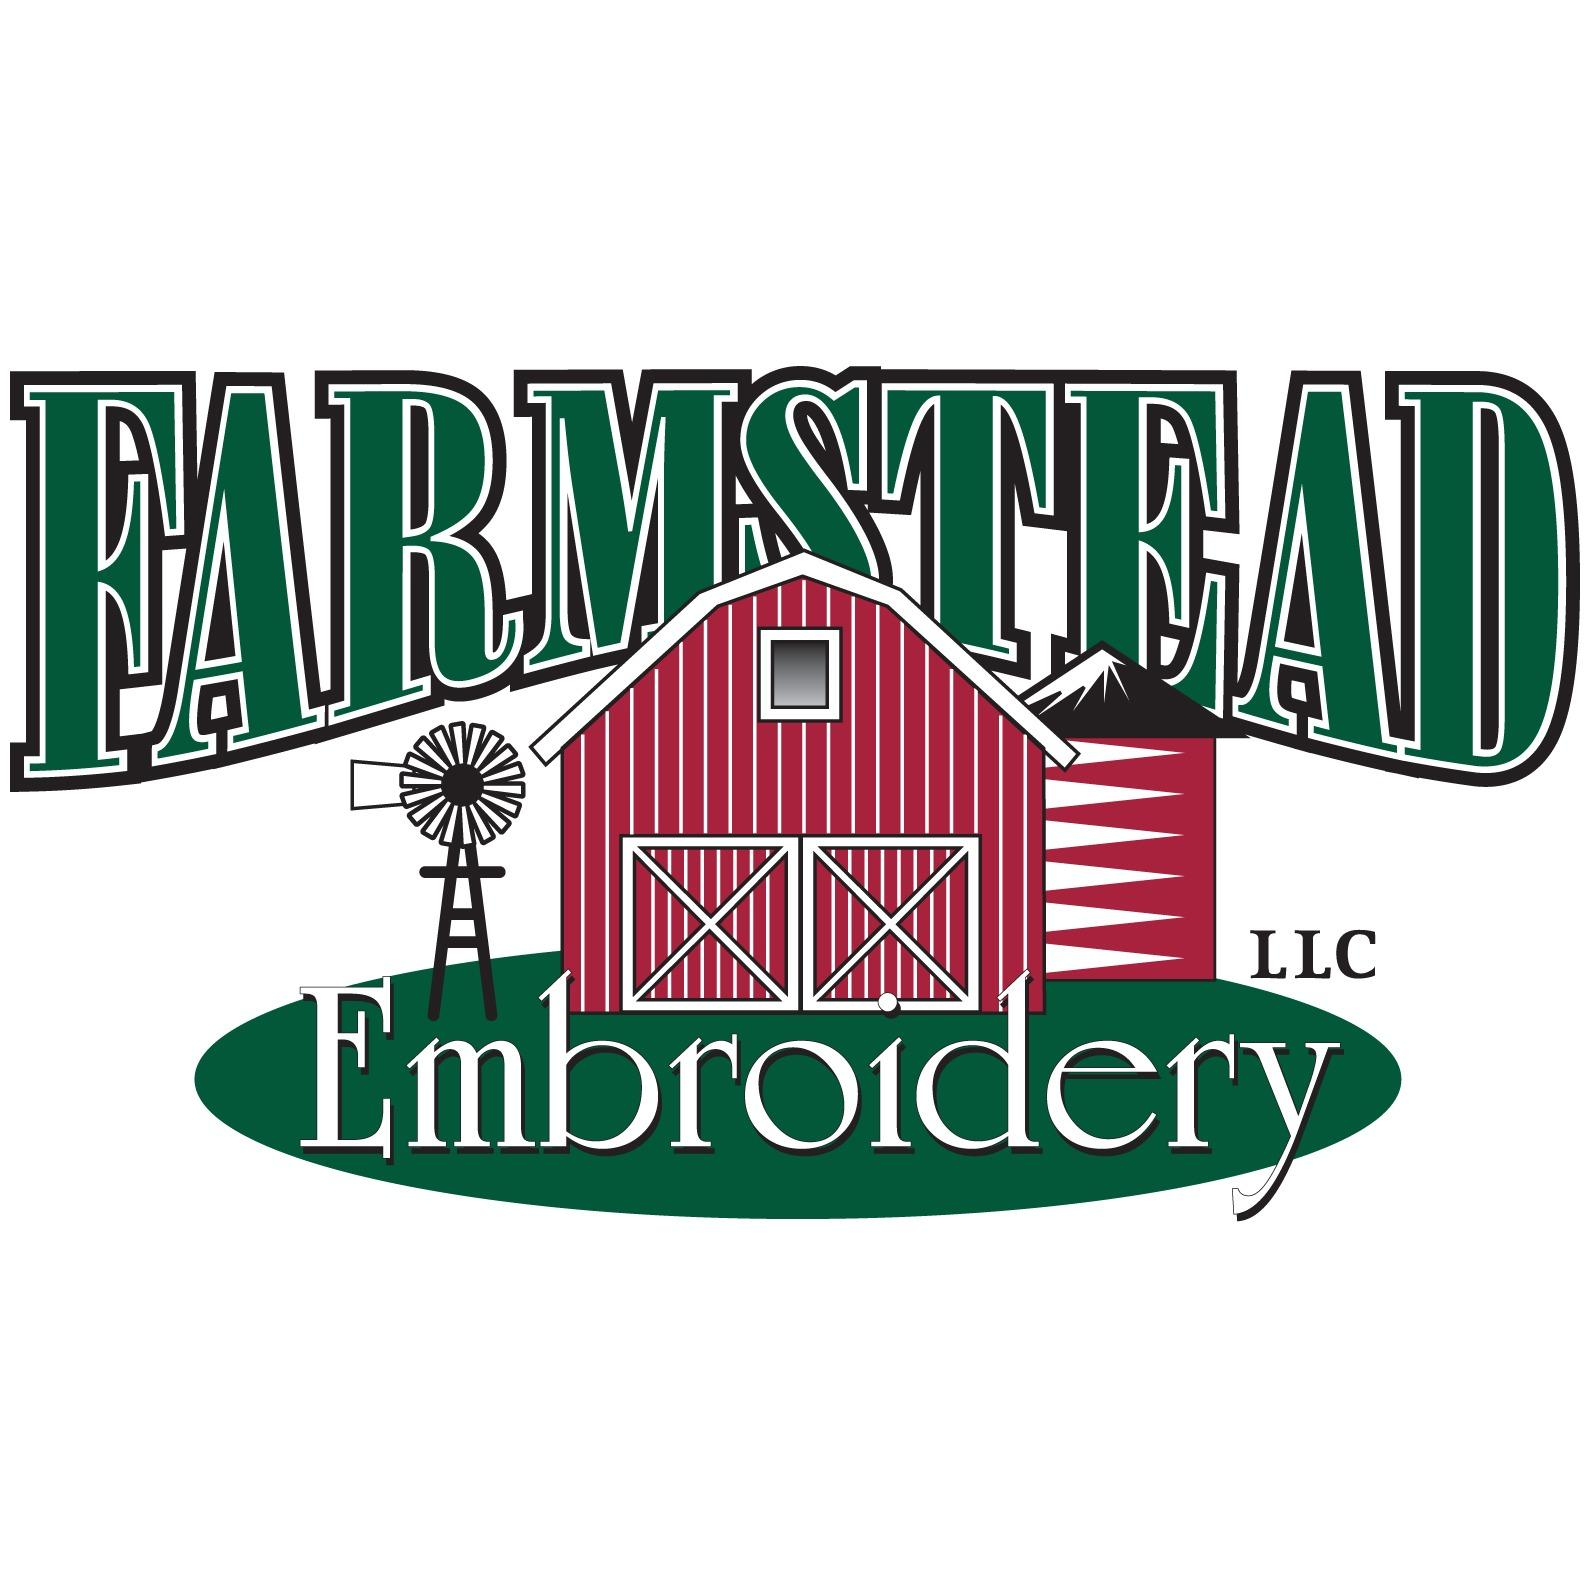 Farmstead Embroidery LLC